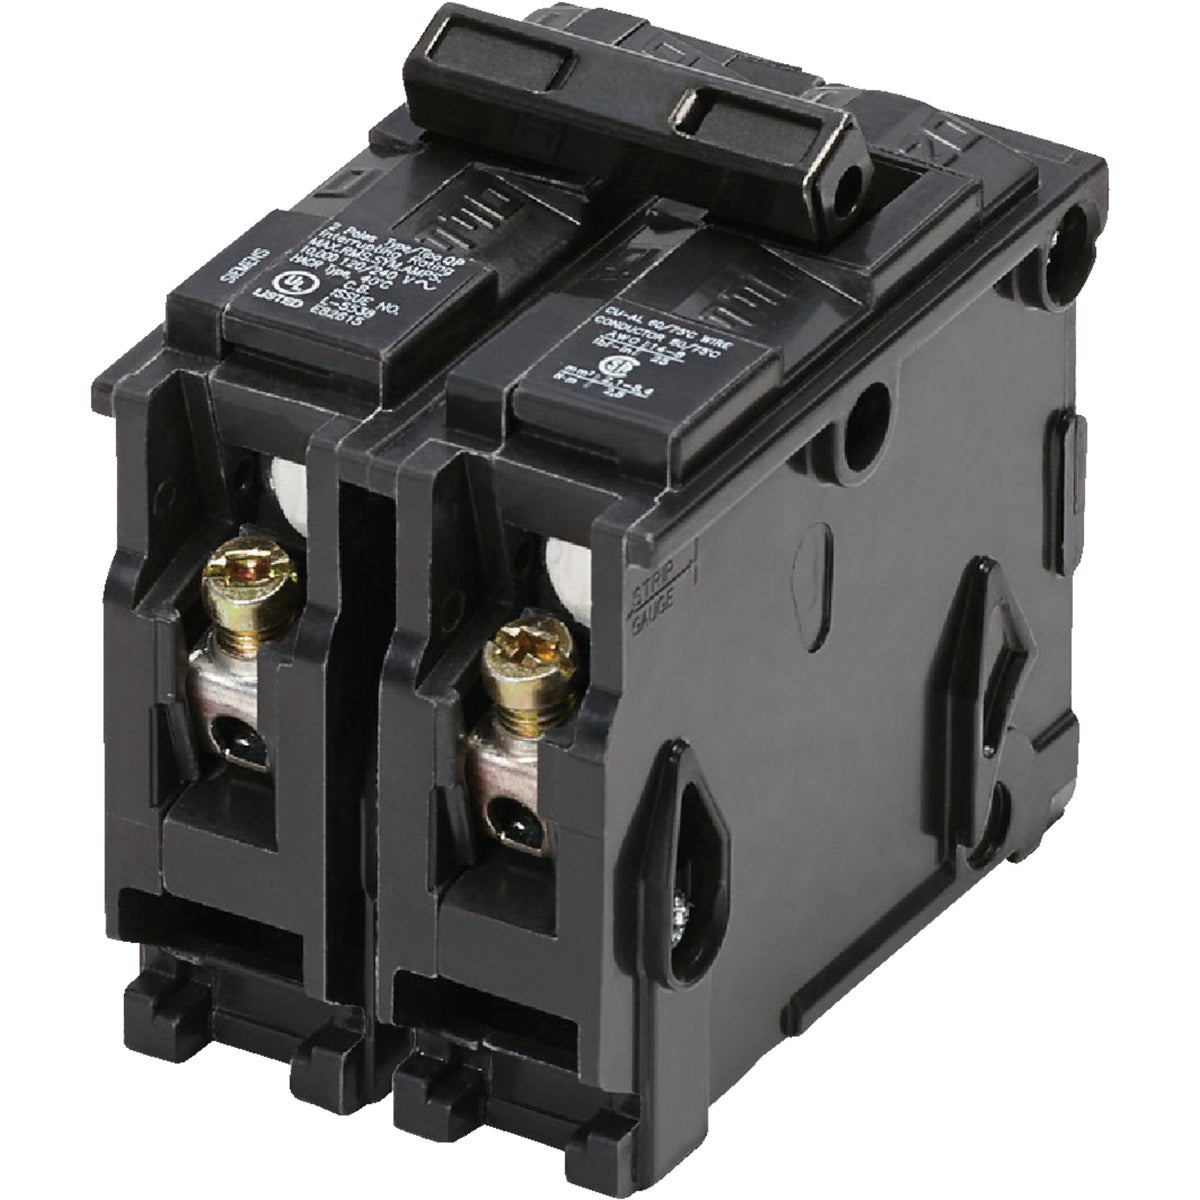 20A 2P CIRCUIT BREAKER - ICBQ220 by Connecticut Electric